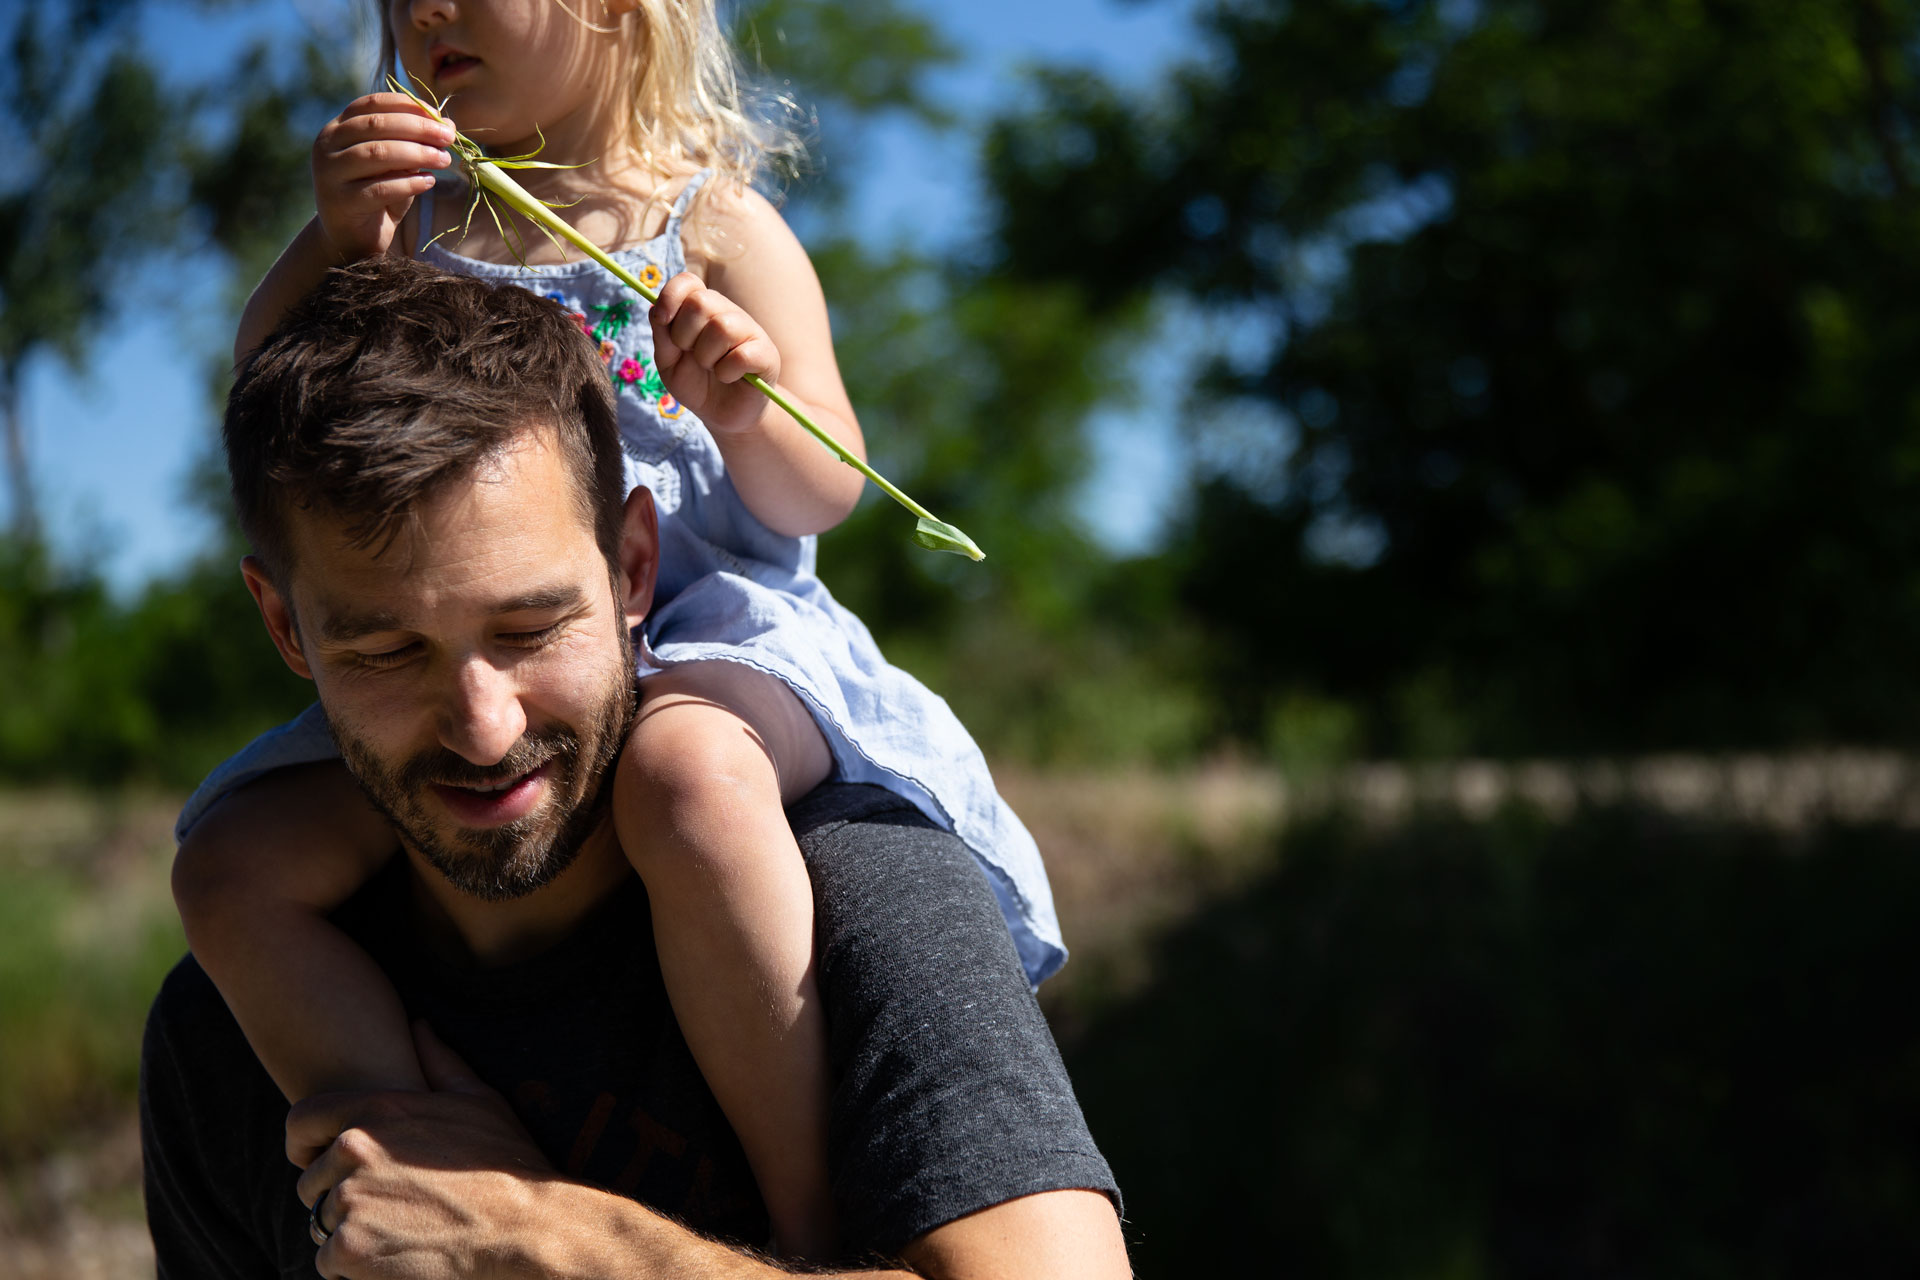 close up of Dad smiling while holding  daughter on his shoulders and she is holding a flower